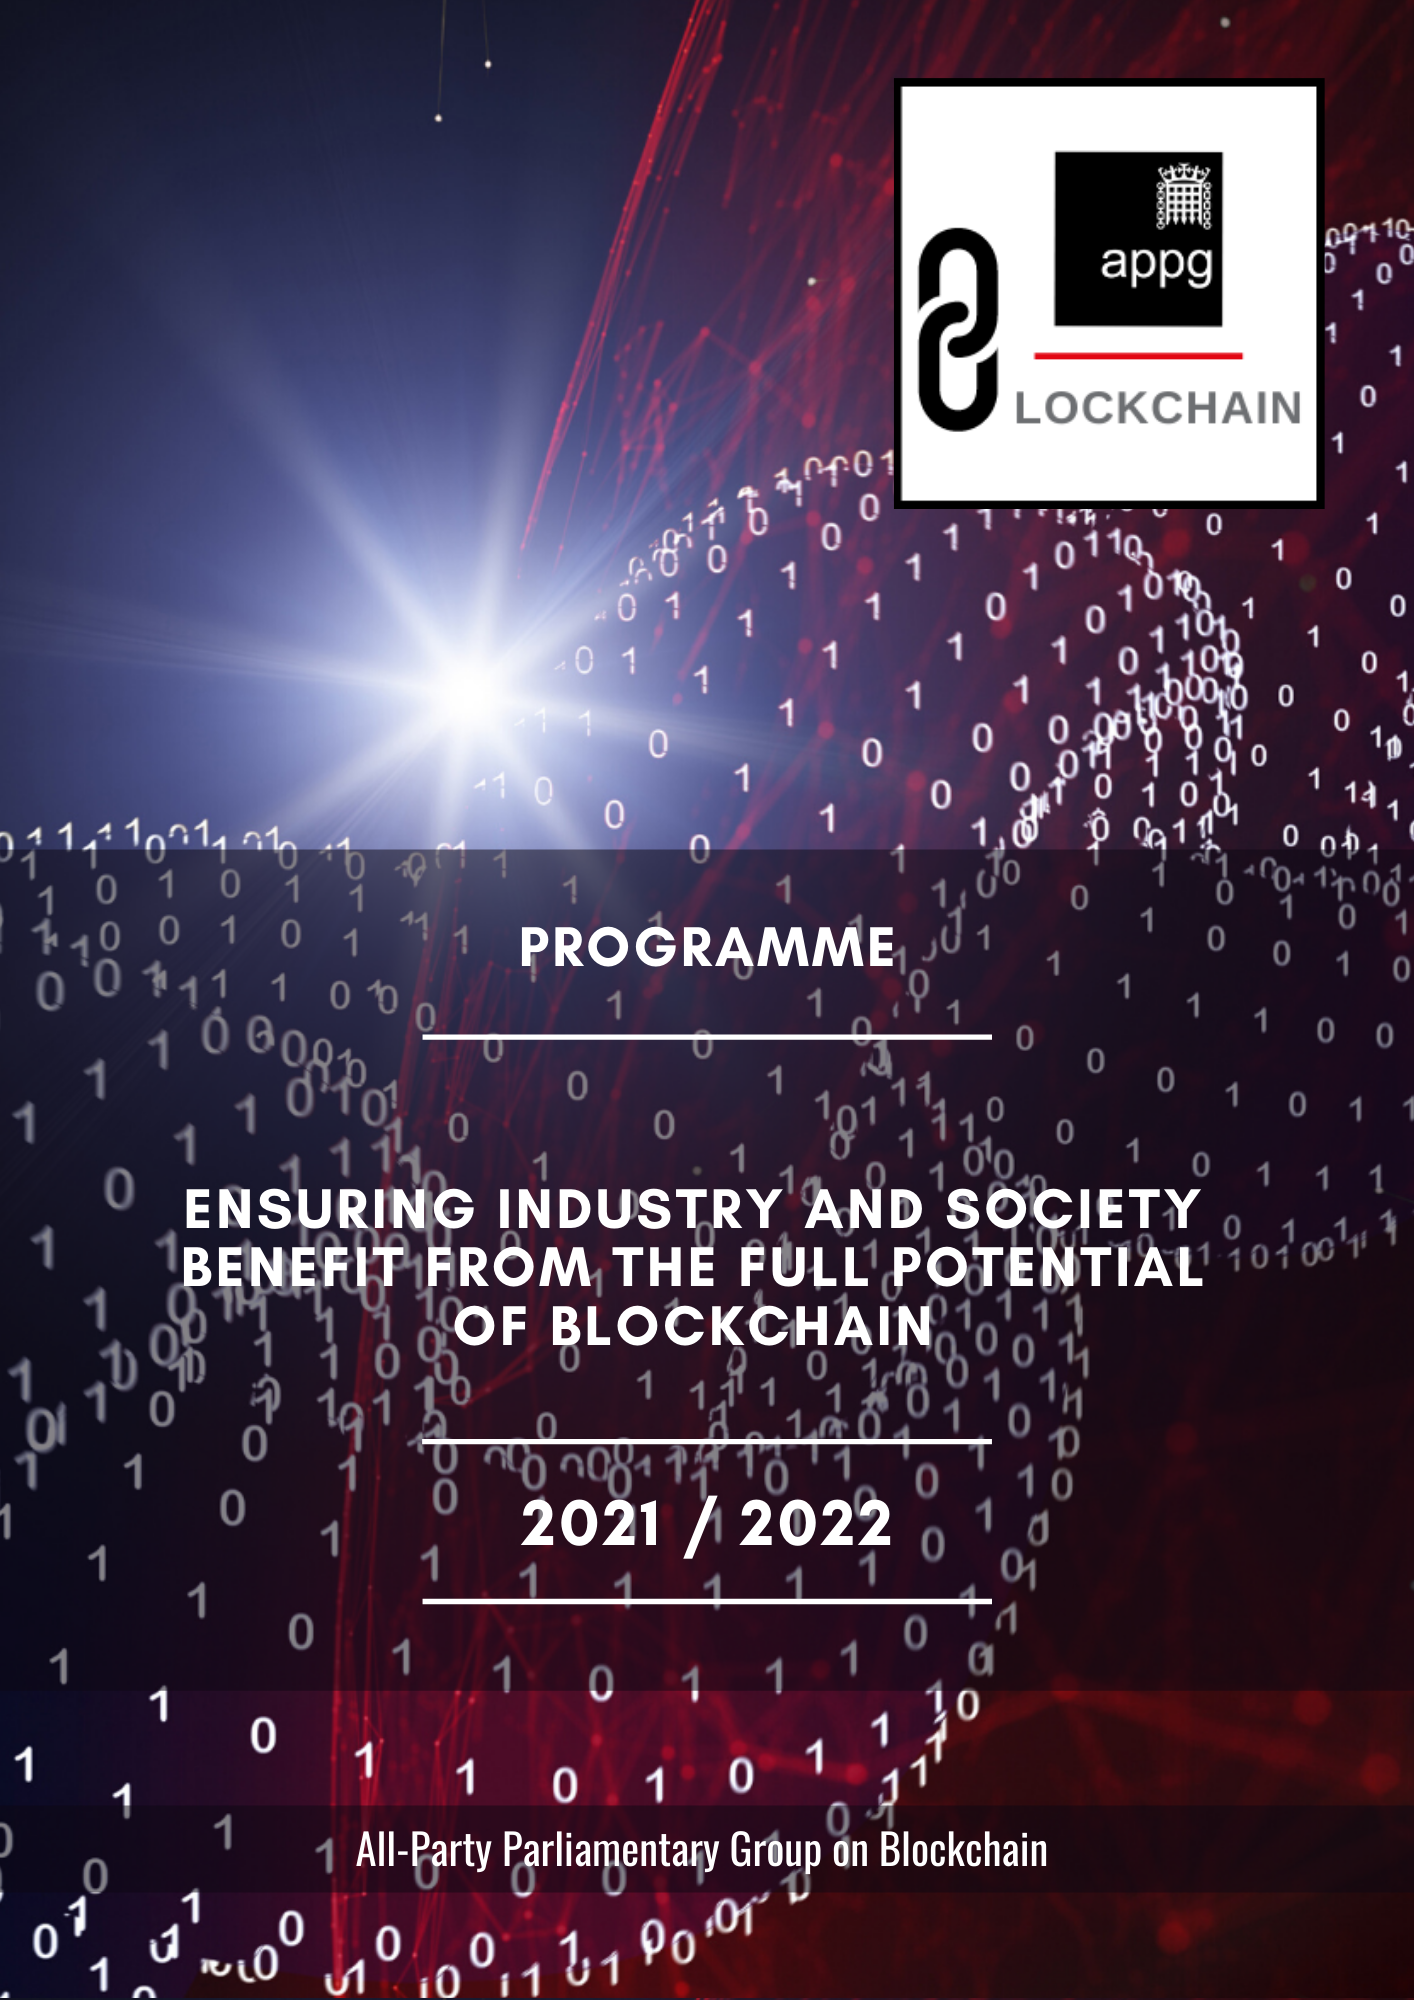 Ensuring industry and society benefit from the full potential of blockchain